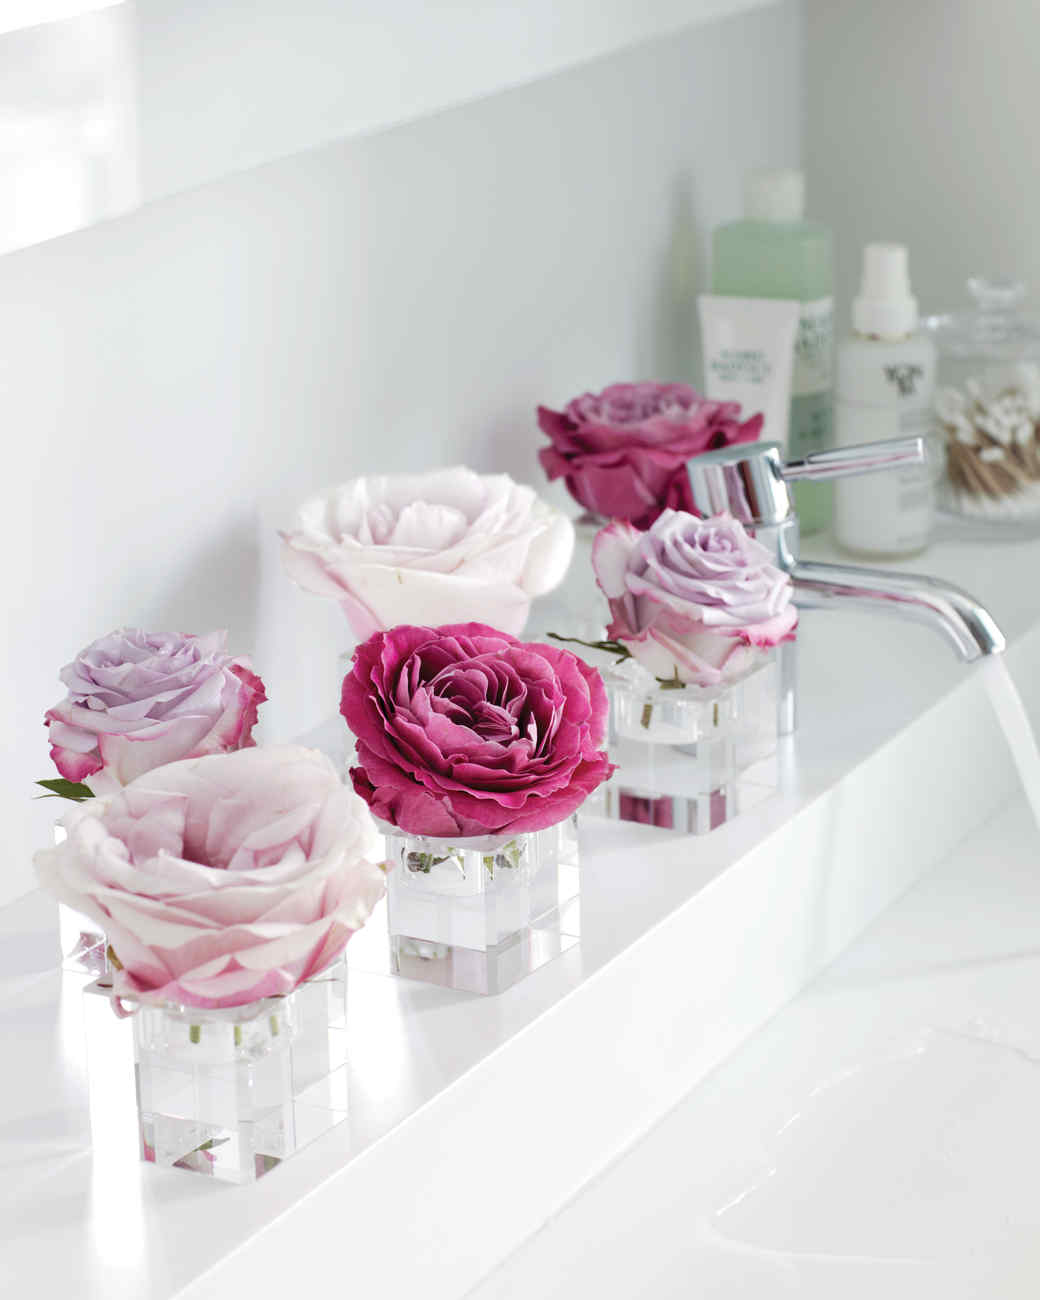 Rose-Inspired Recipes, Crafts, and Decor | Martha Stewart